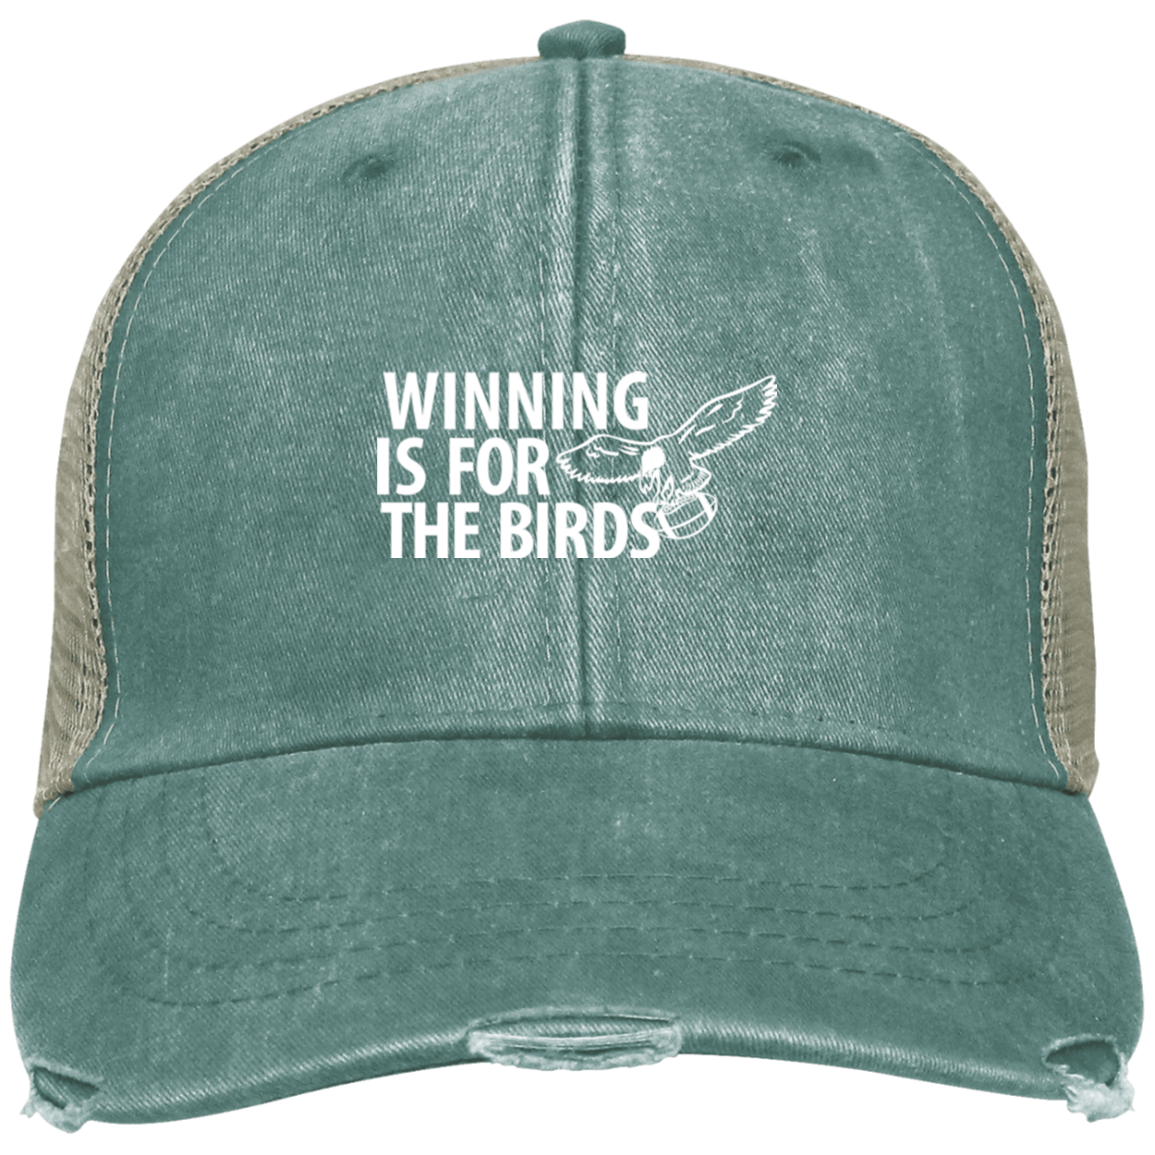 a82fa5dfb Winning is For The Birds Embroidered Distressed Trucker Cap